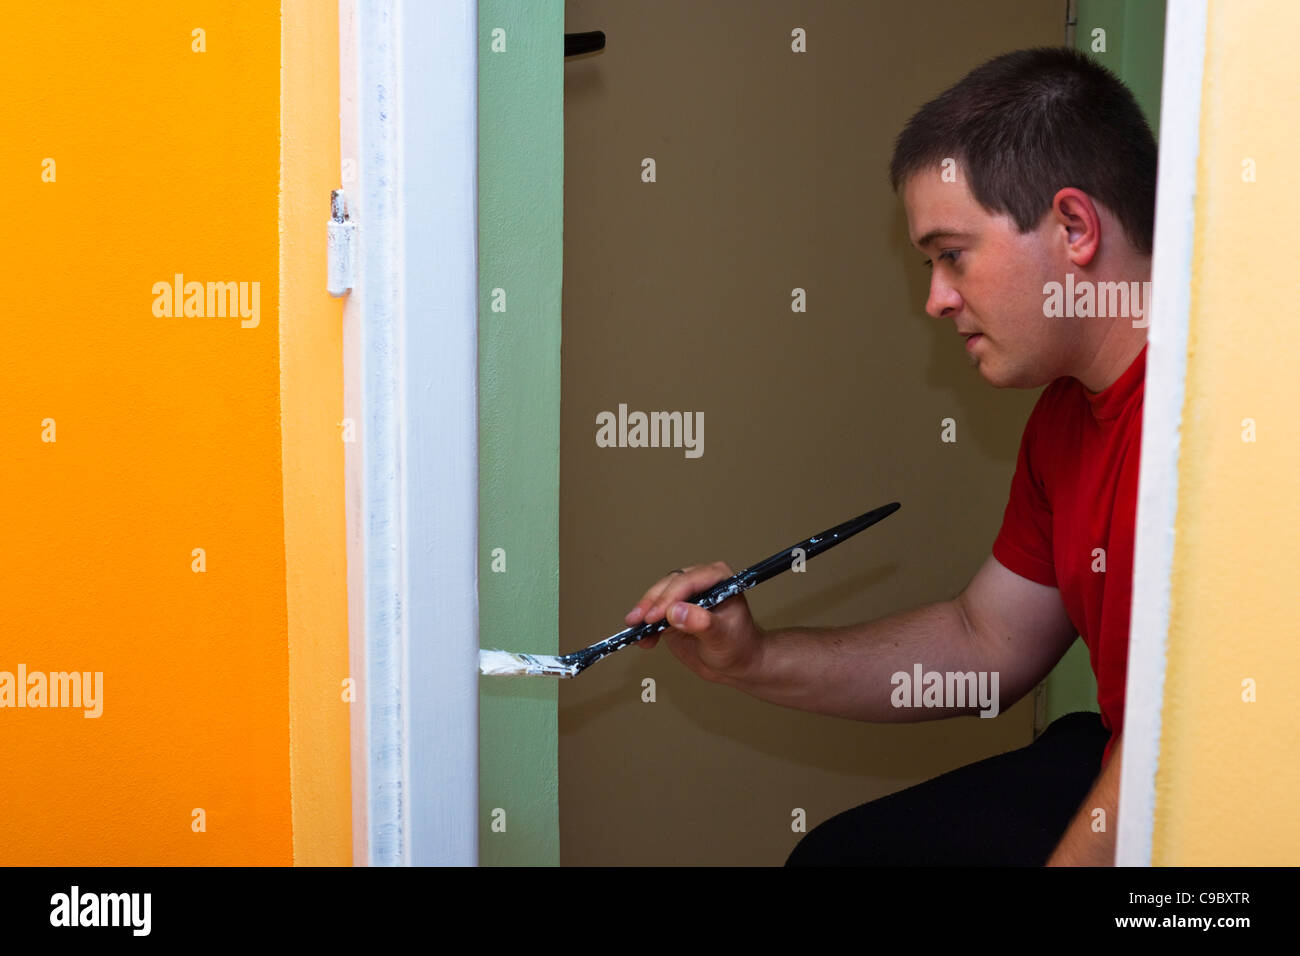 Young man painting new home. - Stock Image